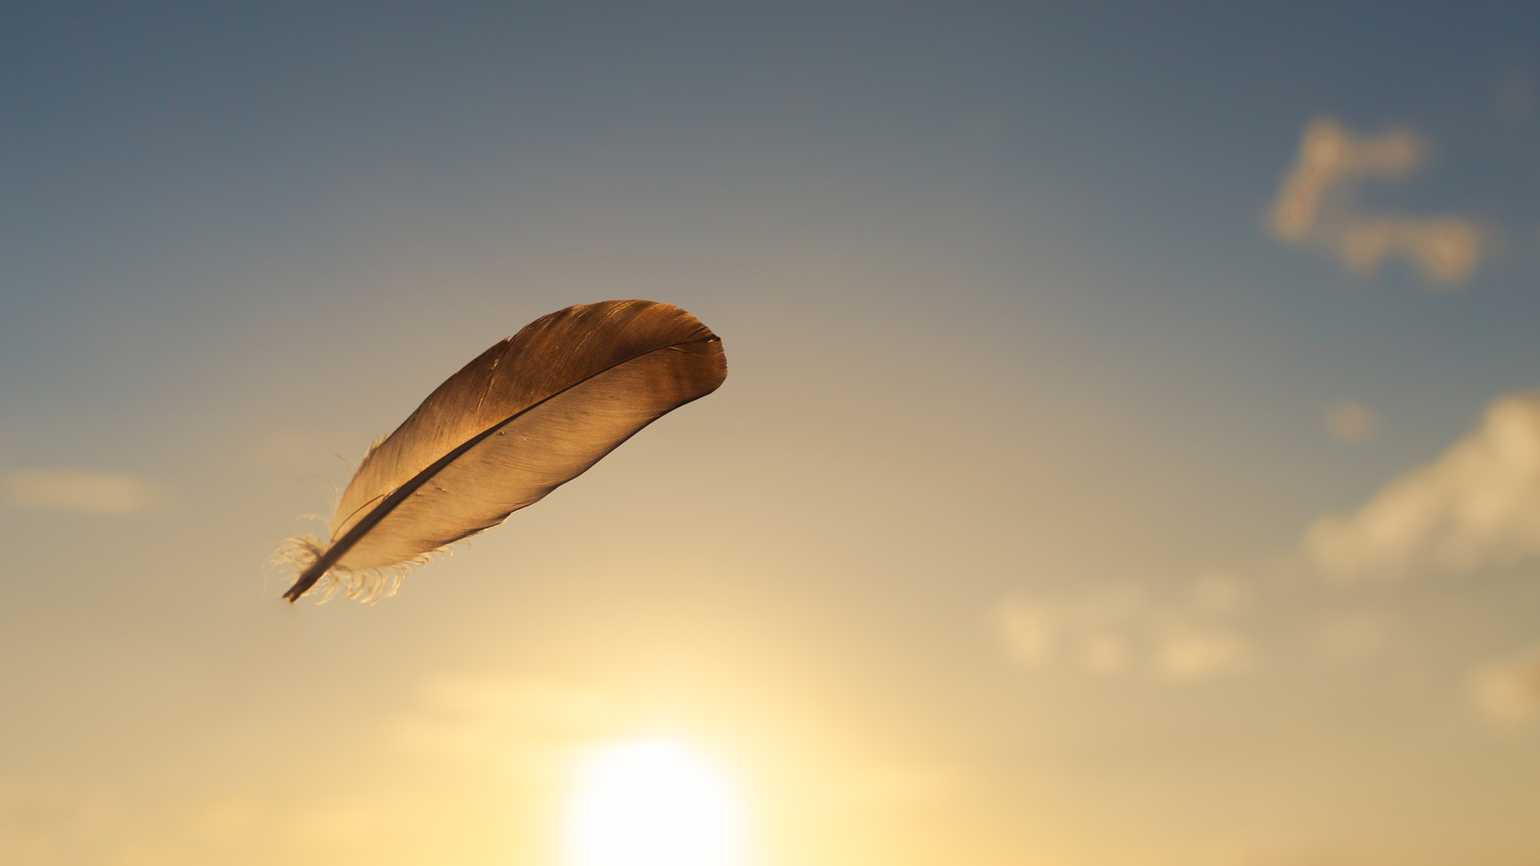 A lone feather in the sky.